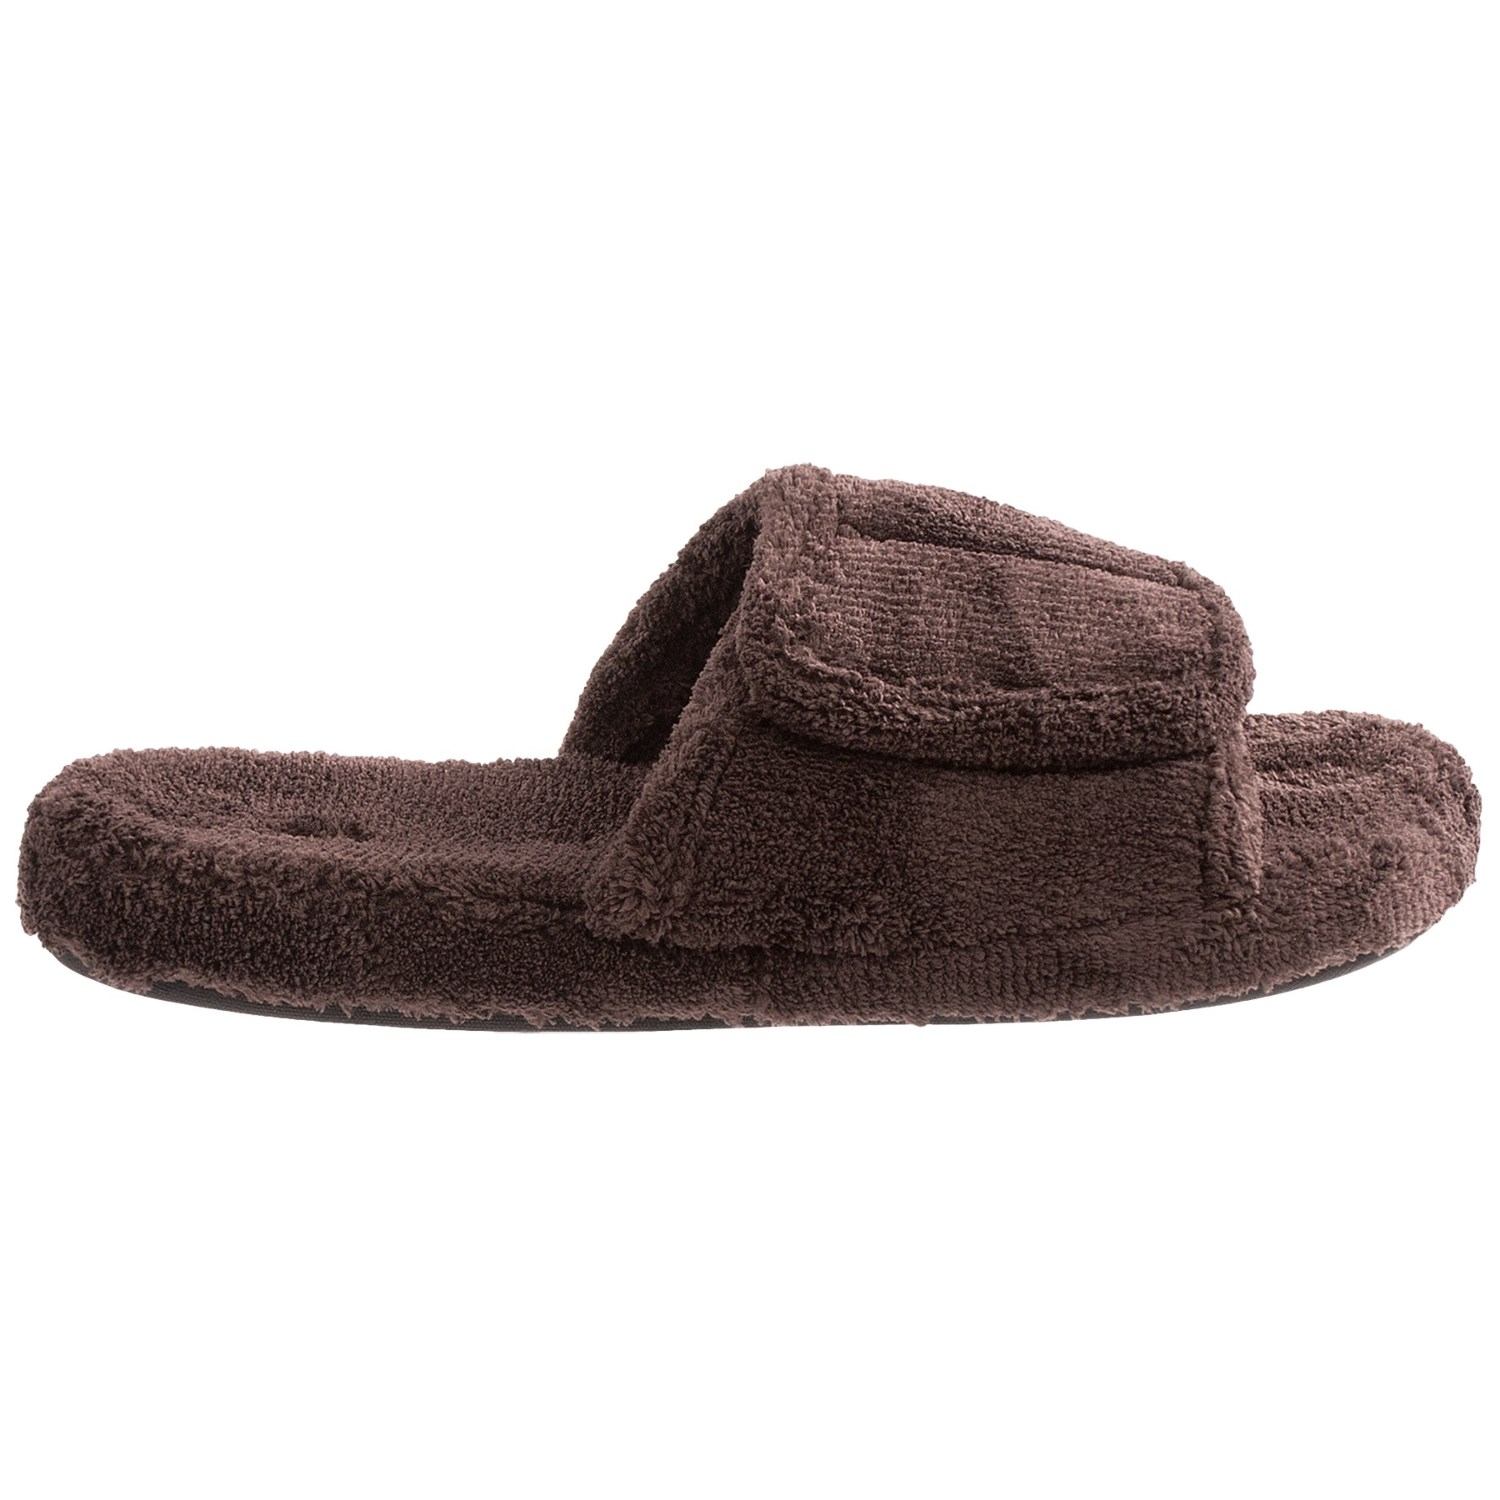 Mens Spa Slide Slippers